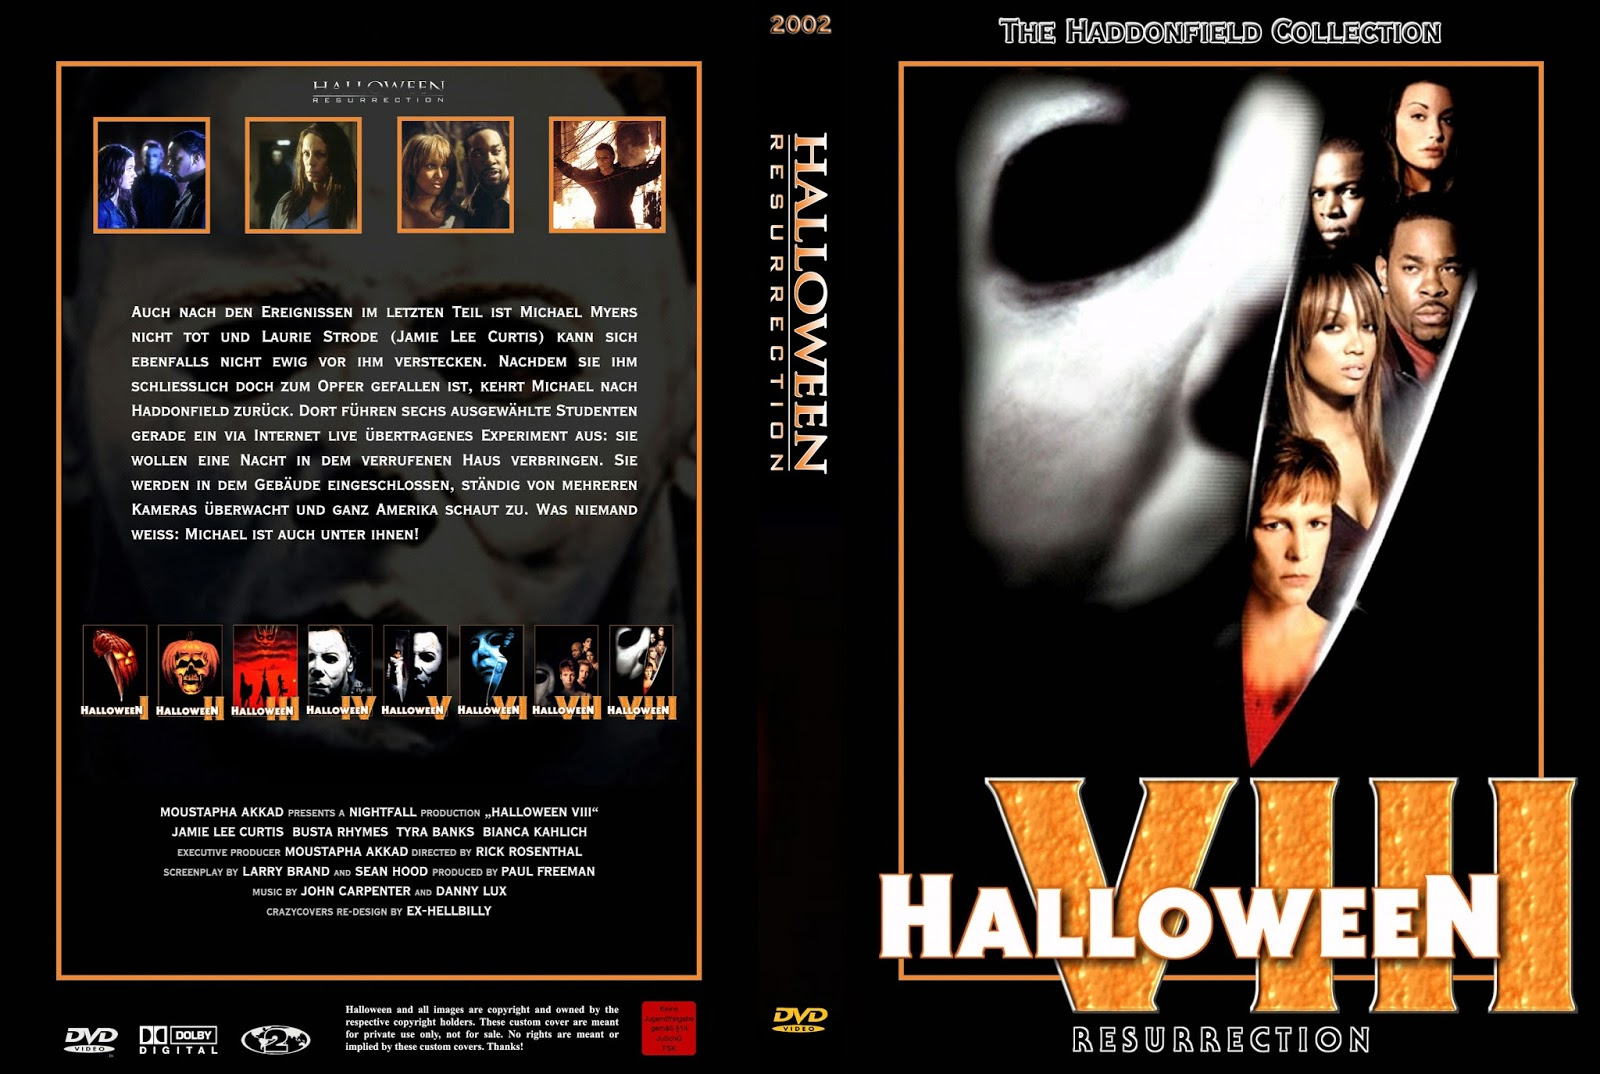 The Horrors Of Halloween: HALLOWEEN RESURRECTION (2002) VHS, DVD And Blu-ray Covers